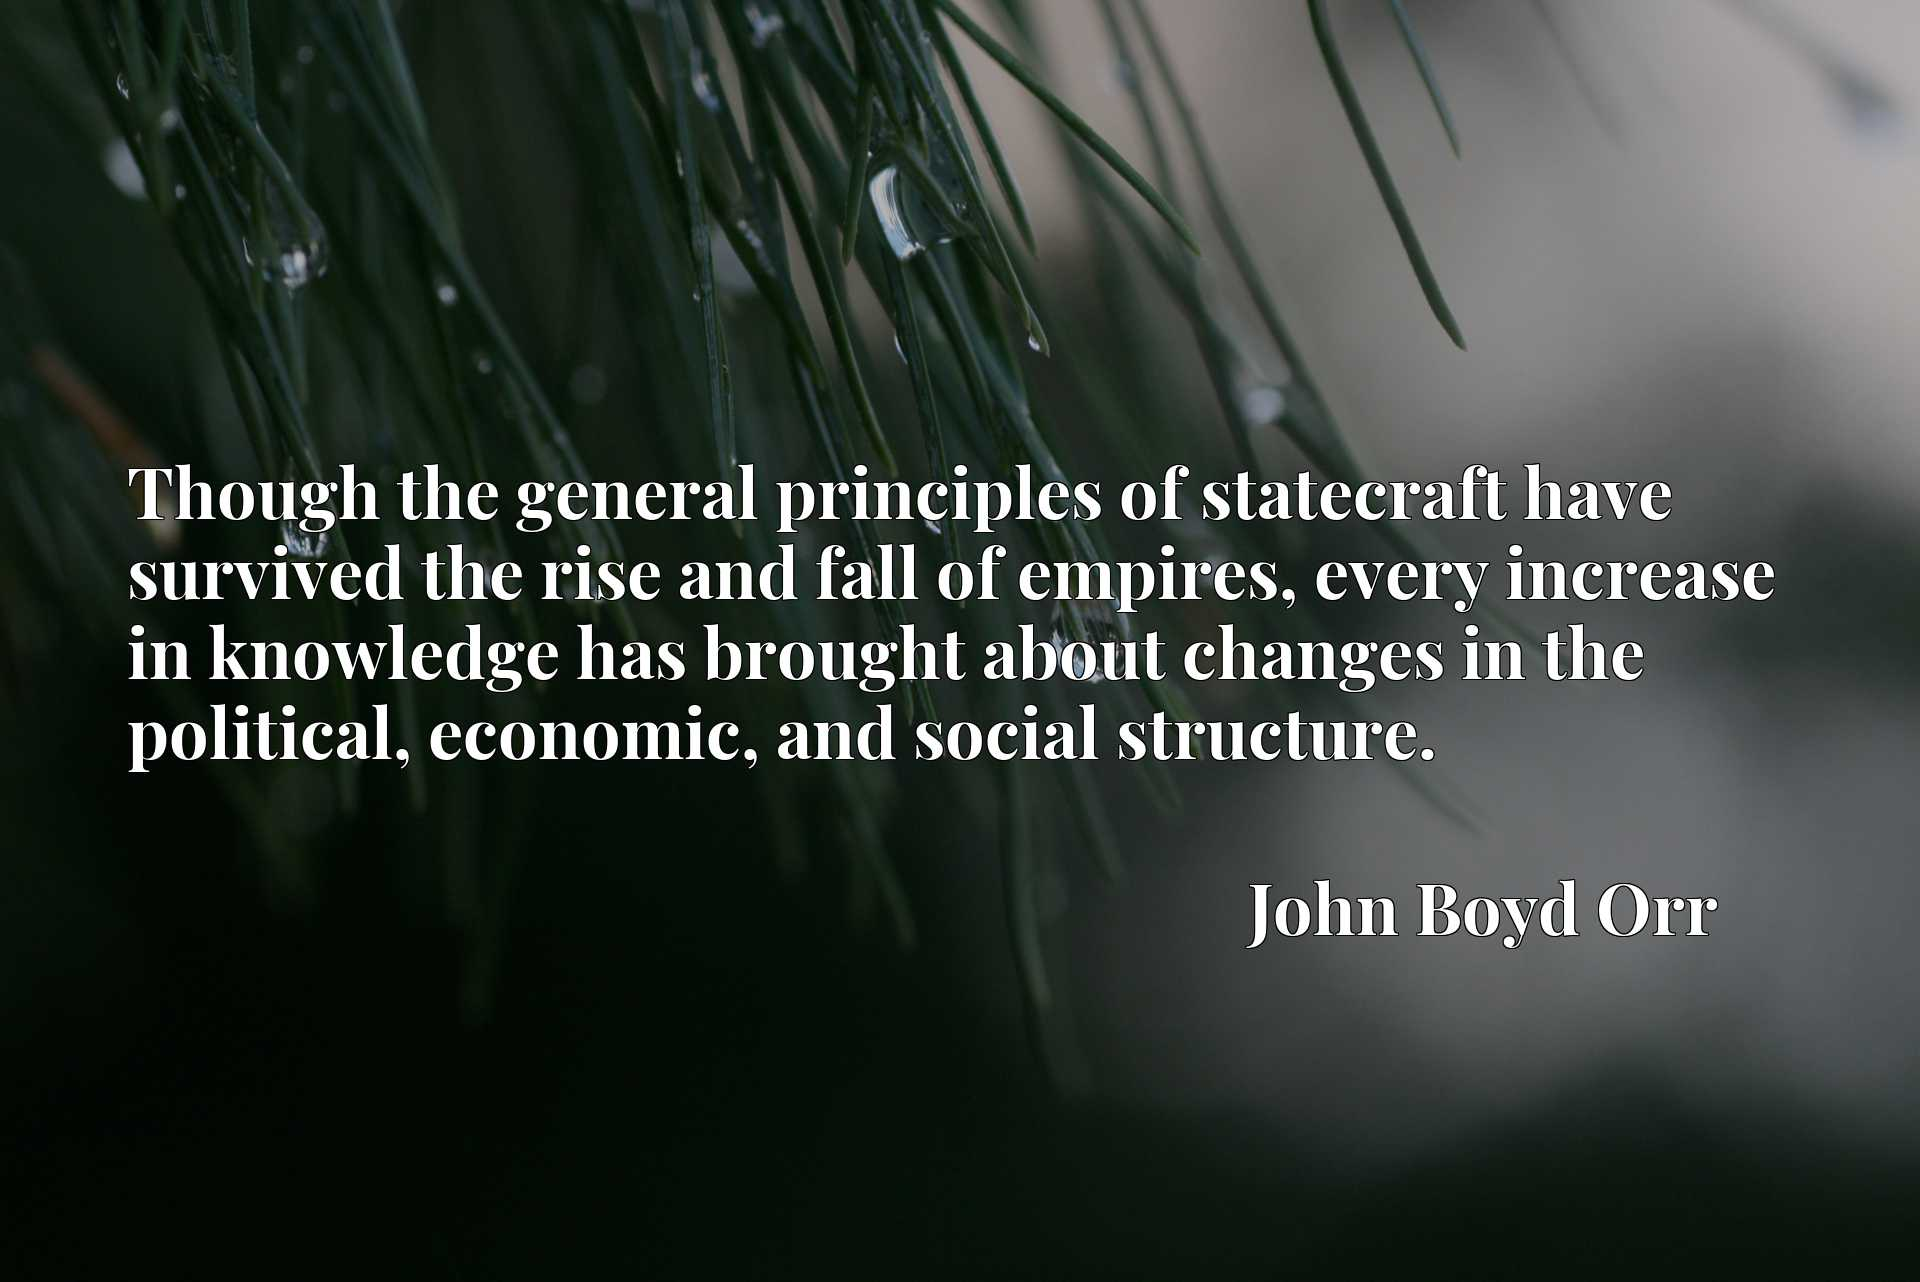 Quote Picture :Though the general principles of statecraft have survived the rise and fall of empires, every increase in knowledge has brought about changes in the political, economic, and social structure.